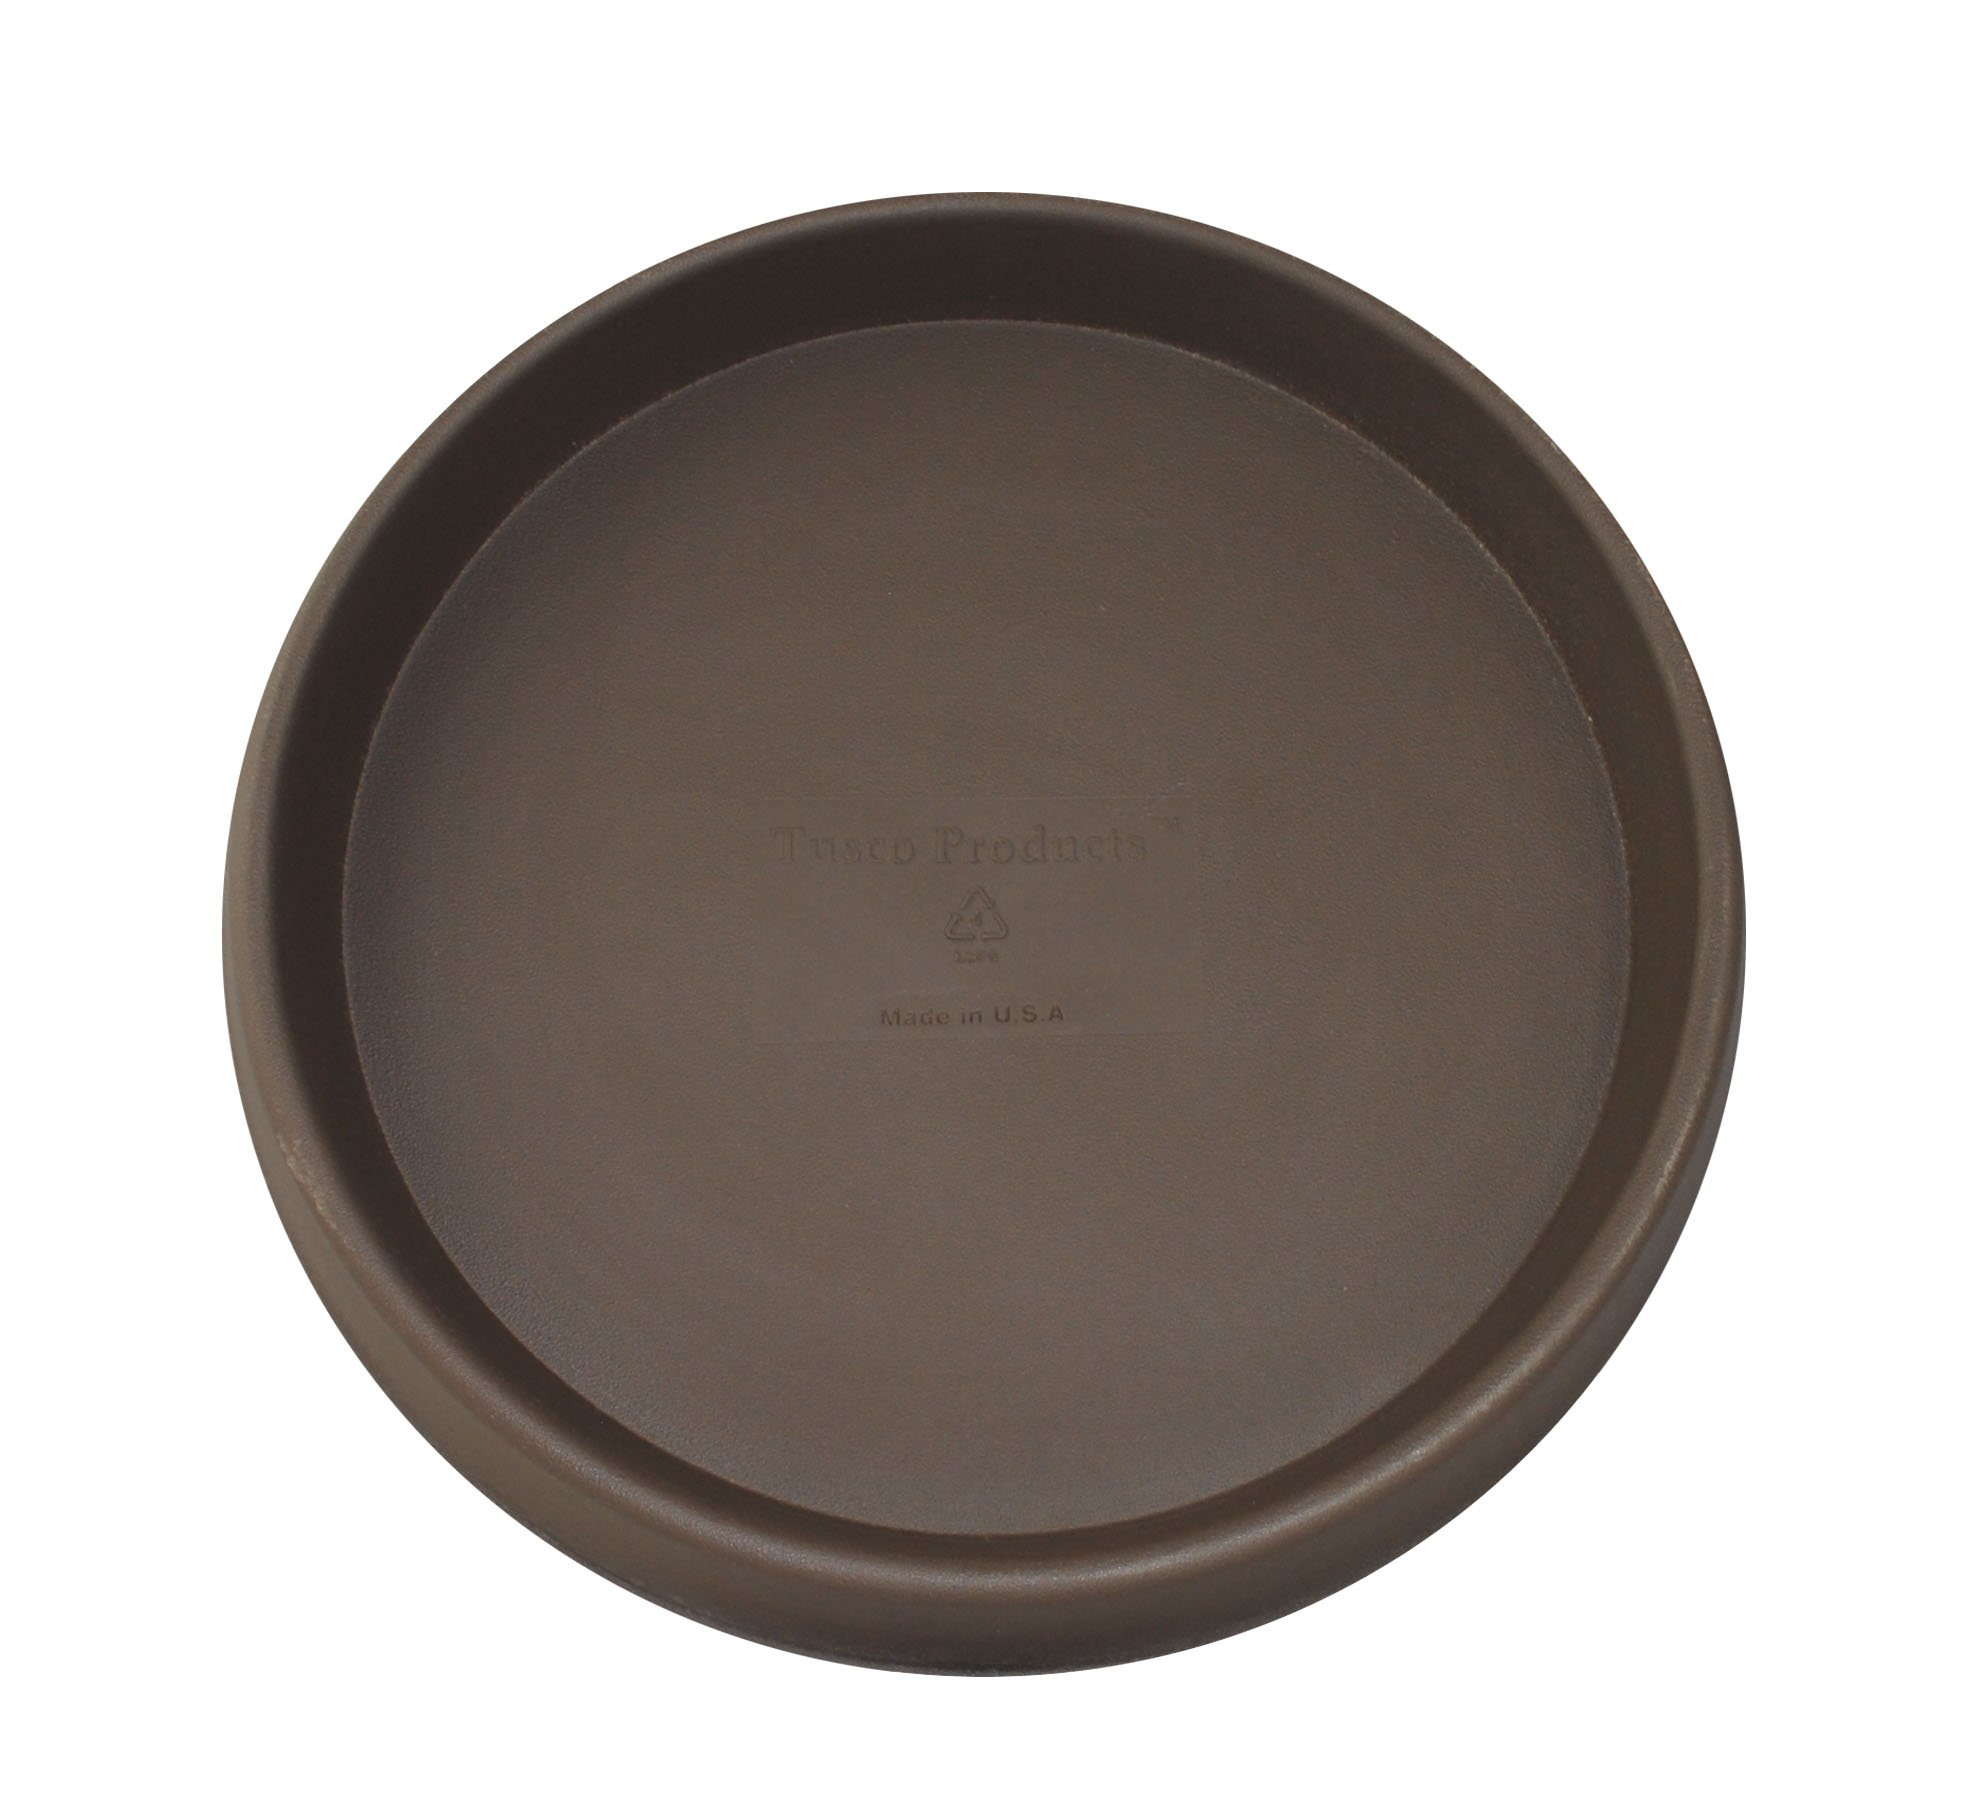 Tusco Products TR22ES Round Saucer, 22-Inch Diameter, Espresso by Tusco Products